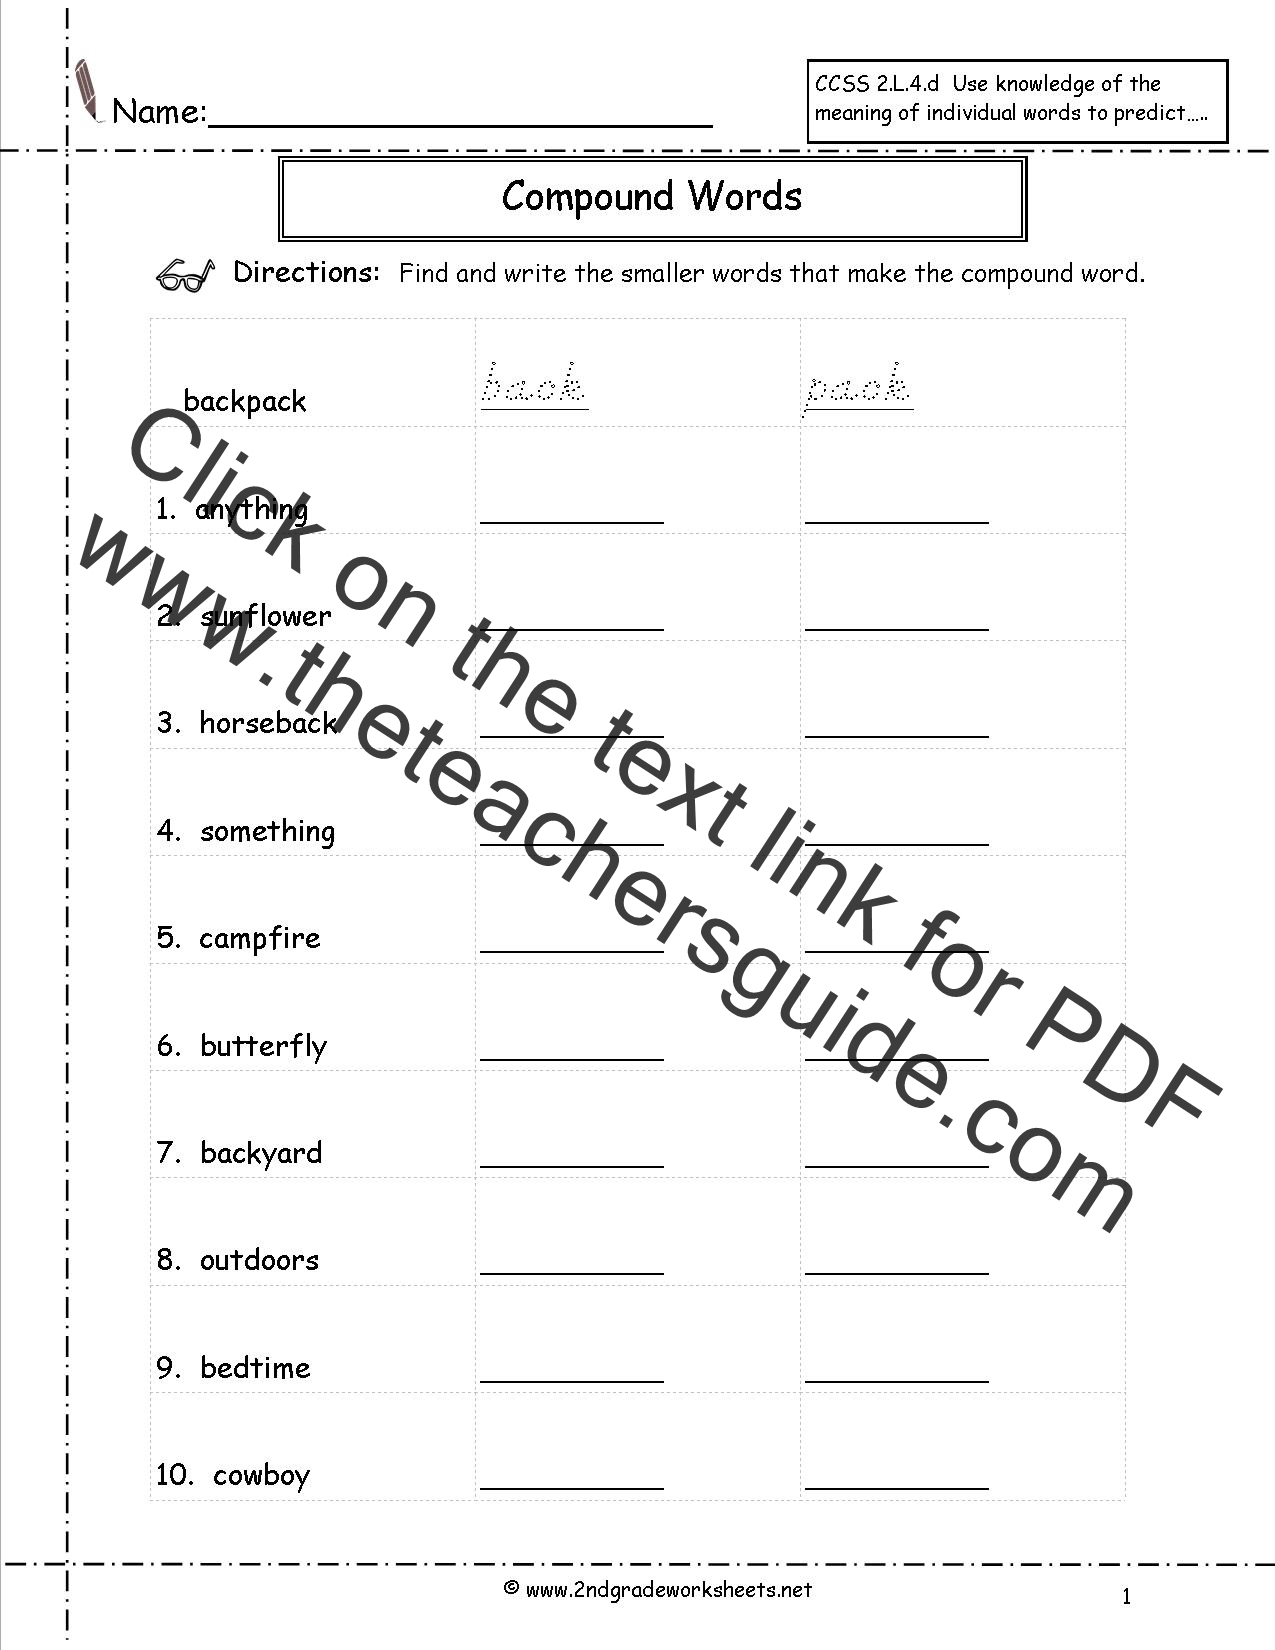 Printables Grammar Worksheets 2nd Grade free languagegrammar worksheets and printouts compound words worksheets